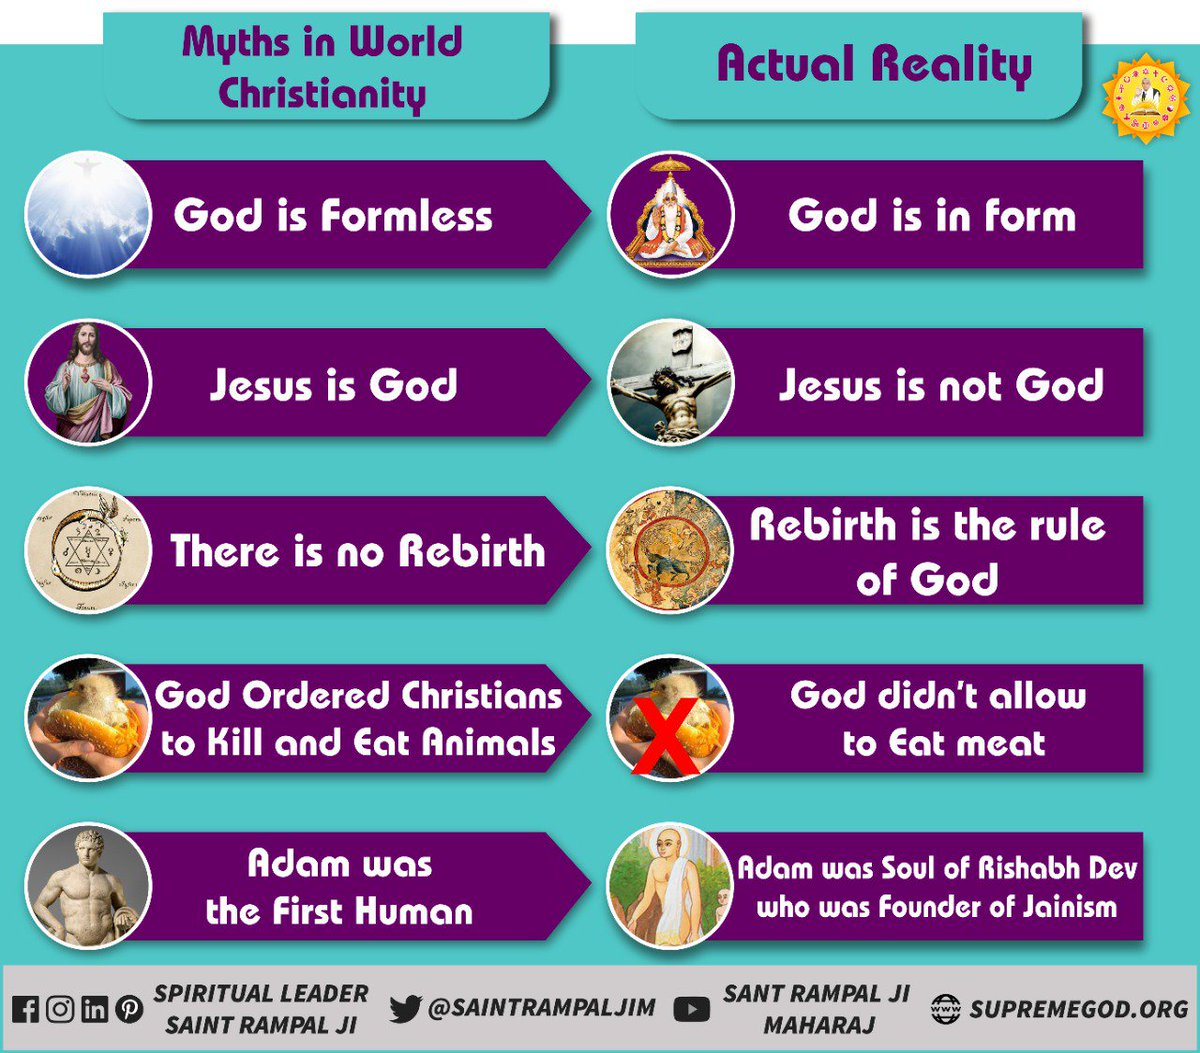 #TuesdayMotivation God is in form and very much present  We are filled by the religious scholars and gurus  To know truth  Watch spiritual gyan by sant rampal g maharaj  Sadhana tv 730 to 830  Ishwar tv 830 to 930